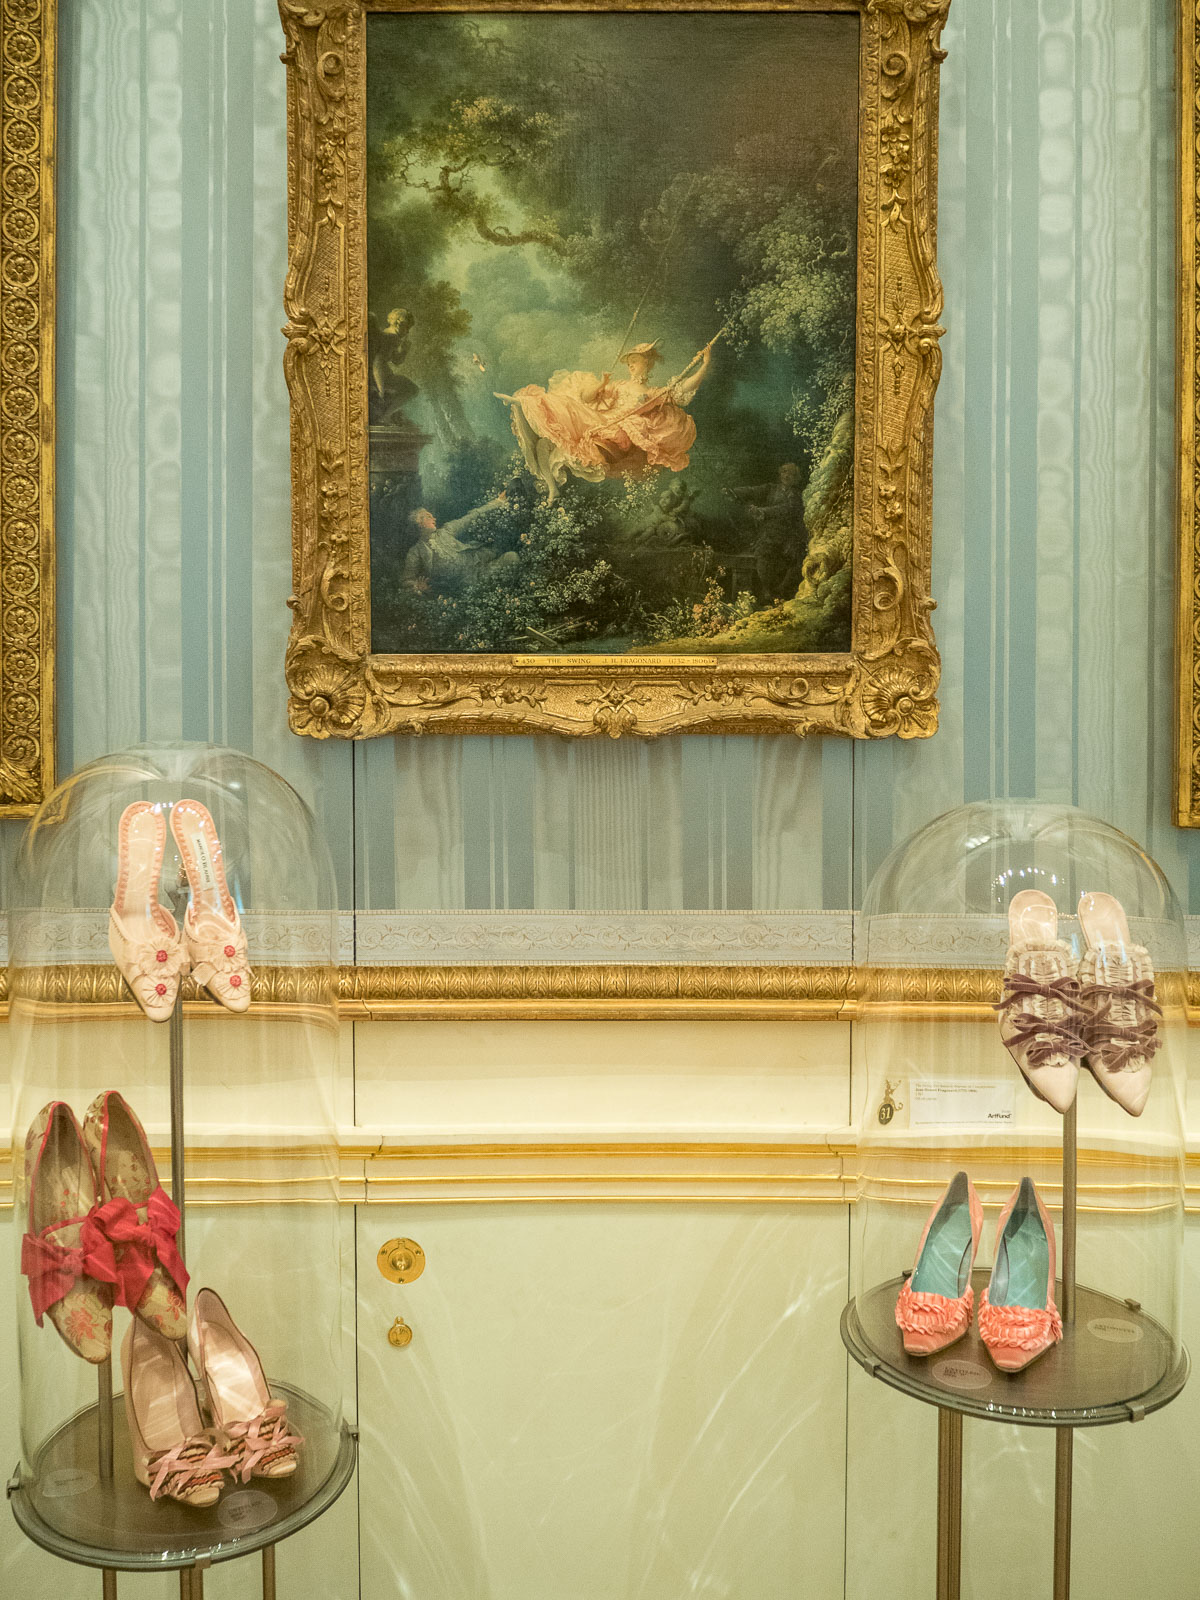 Manolo Blahnik, The Wallace Collection, Designer Shoes, Art, Fashion, Exhibition, Things to do in London, London